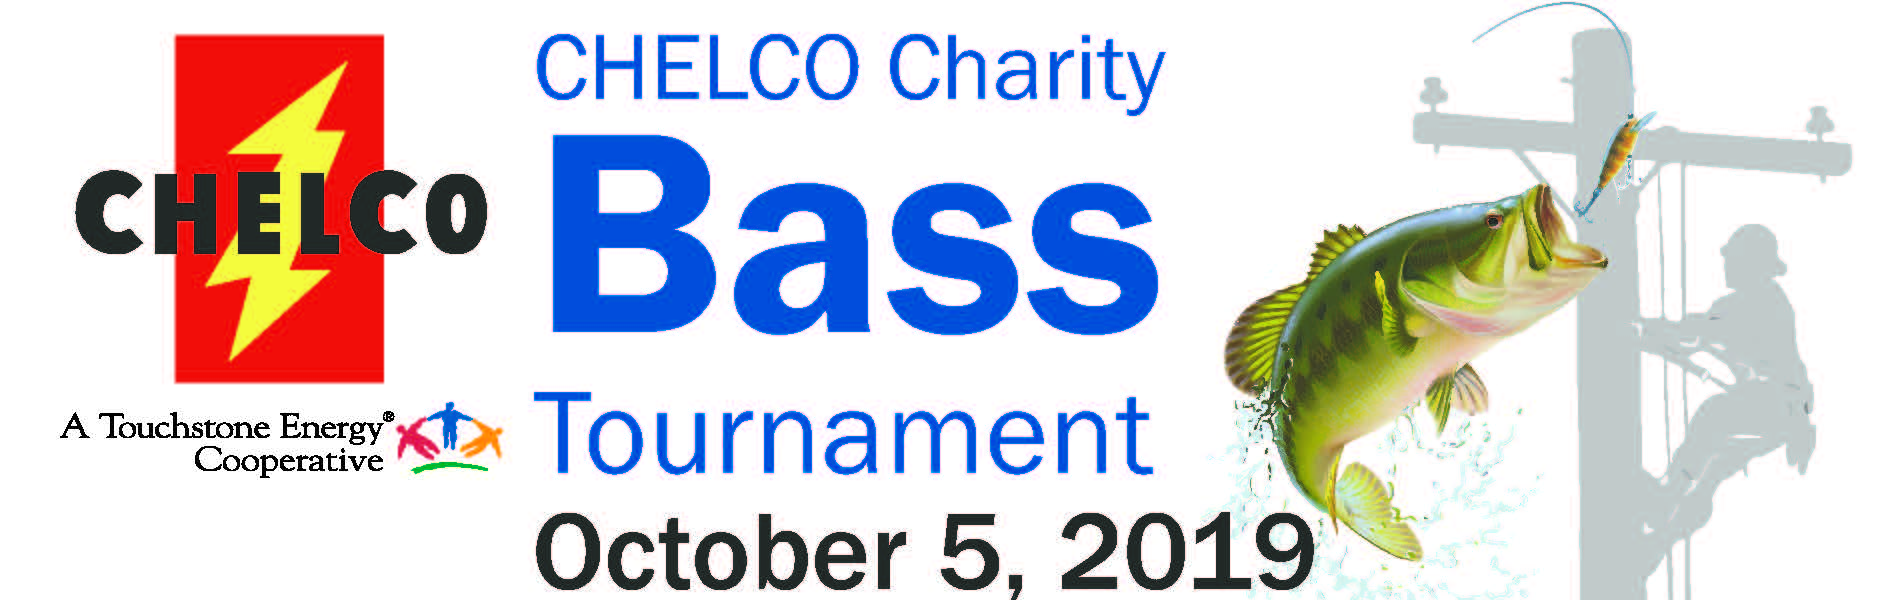 CHELCO%20Charity%20Bass%20Tournament%20graphic%20.jpg